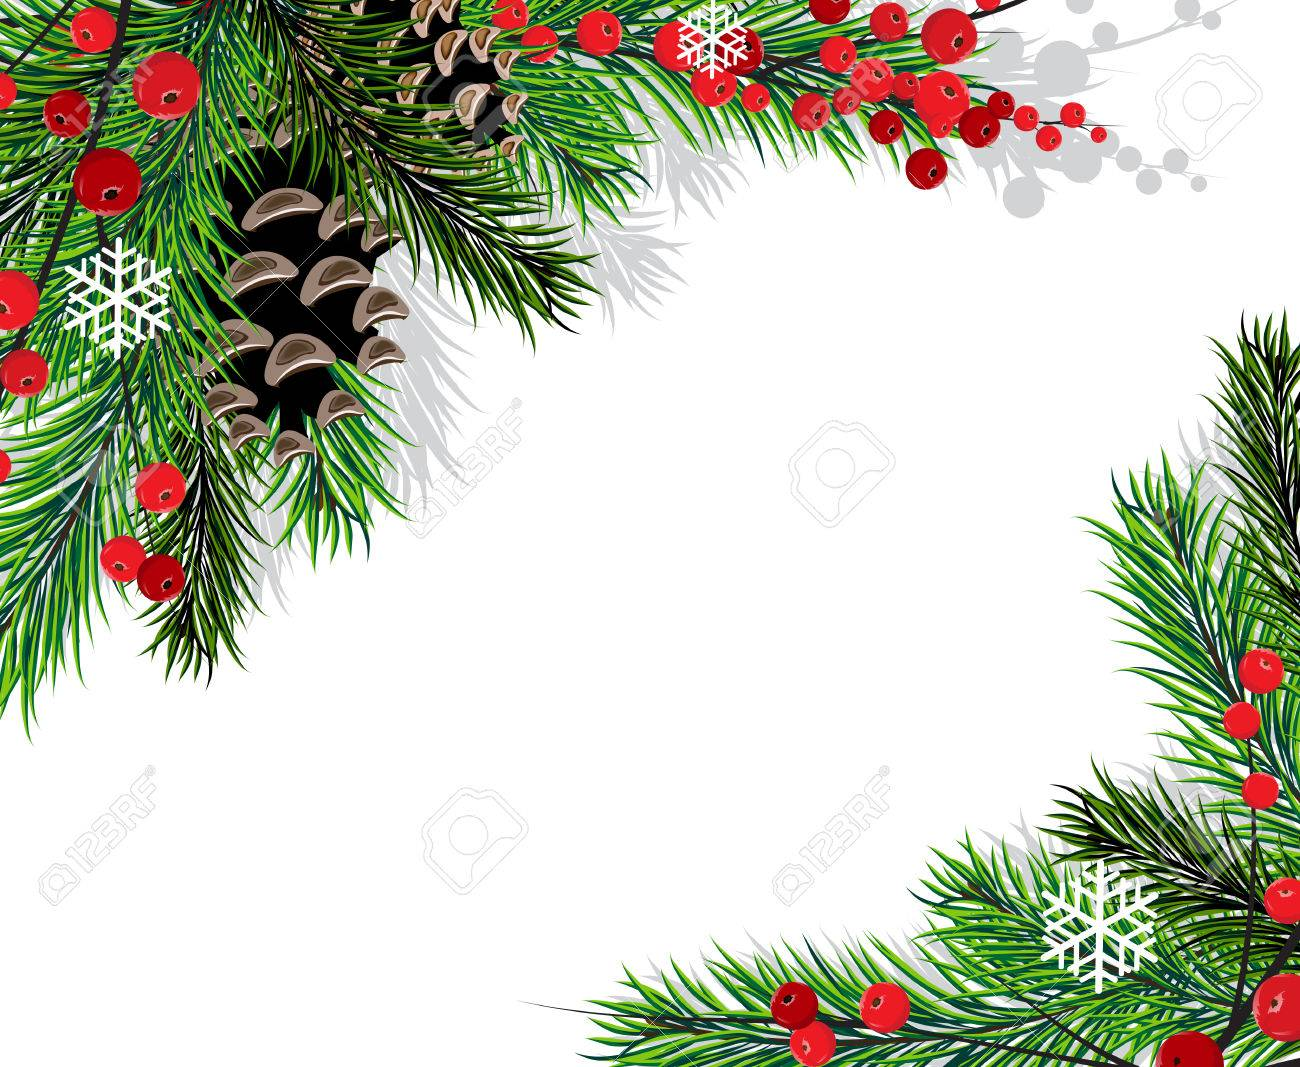 Spruce branches with cones and red berries on a white background - 24123003